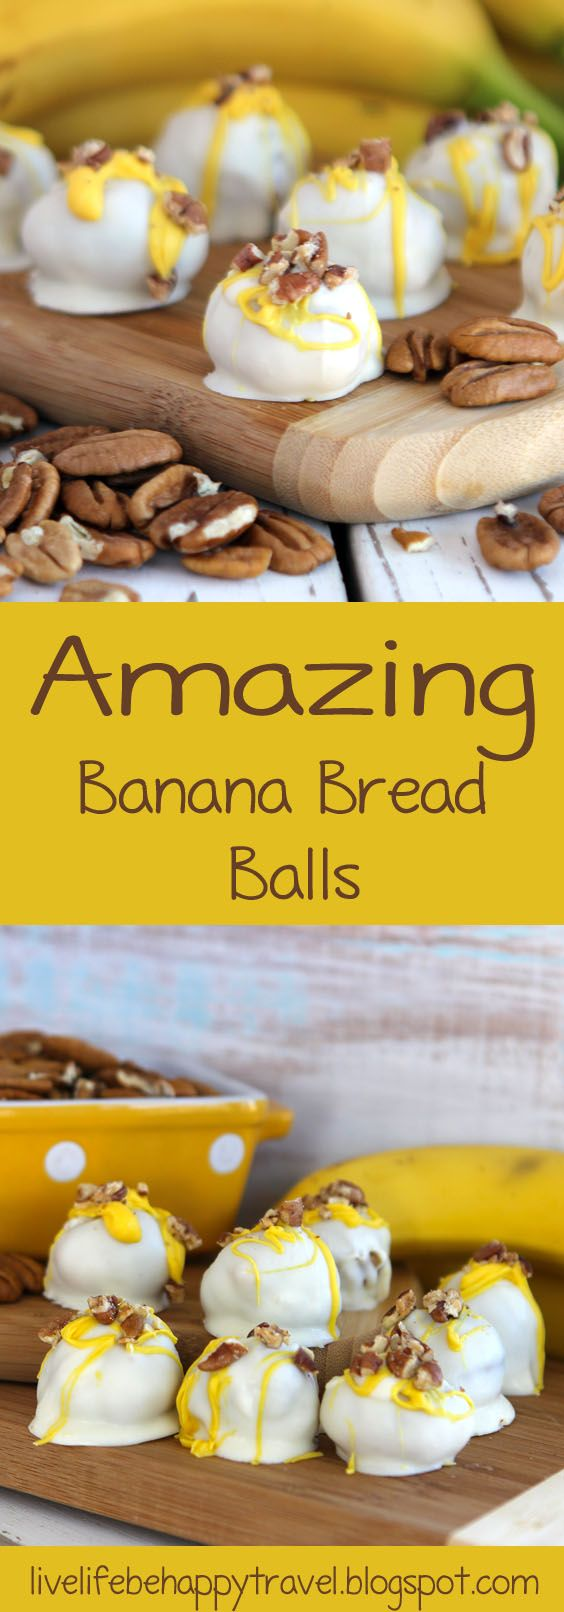 Banana Bread Balls - Quick and easy to make -Filled with real bananas and pecans. These are amazing!